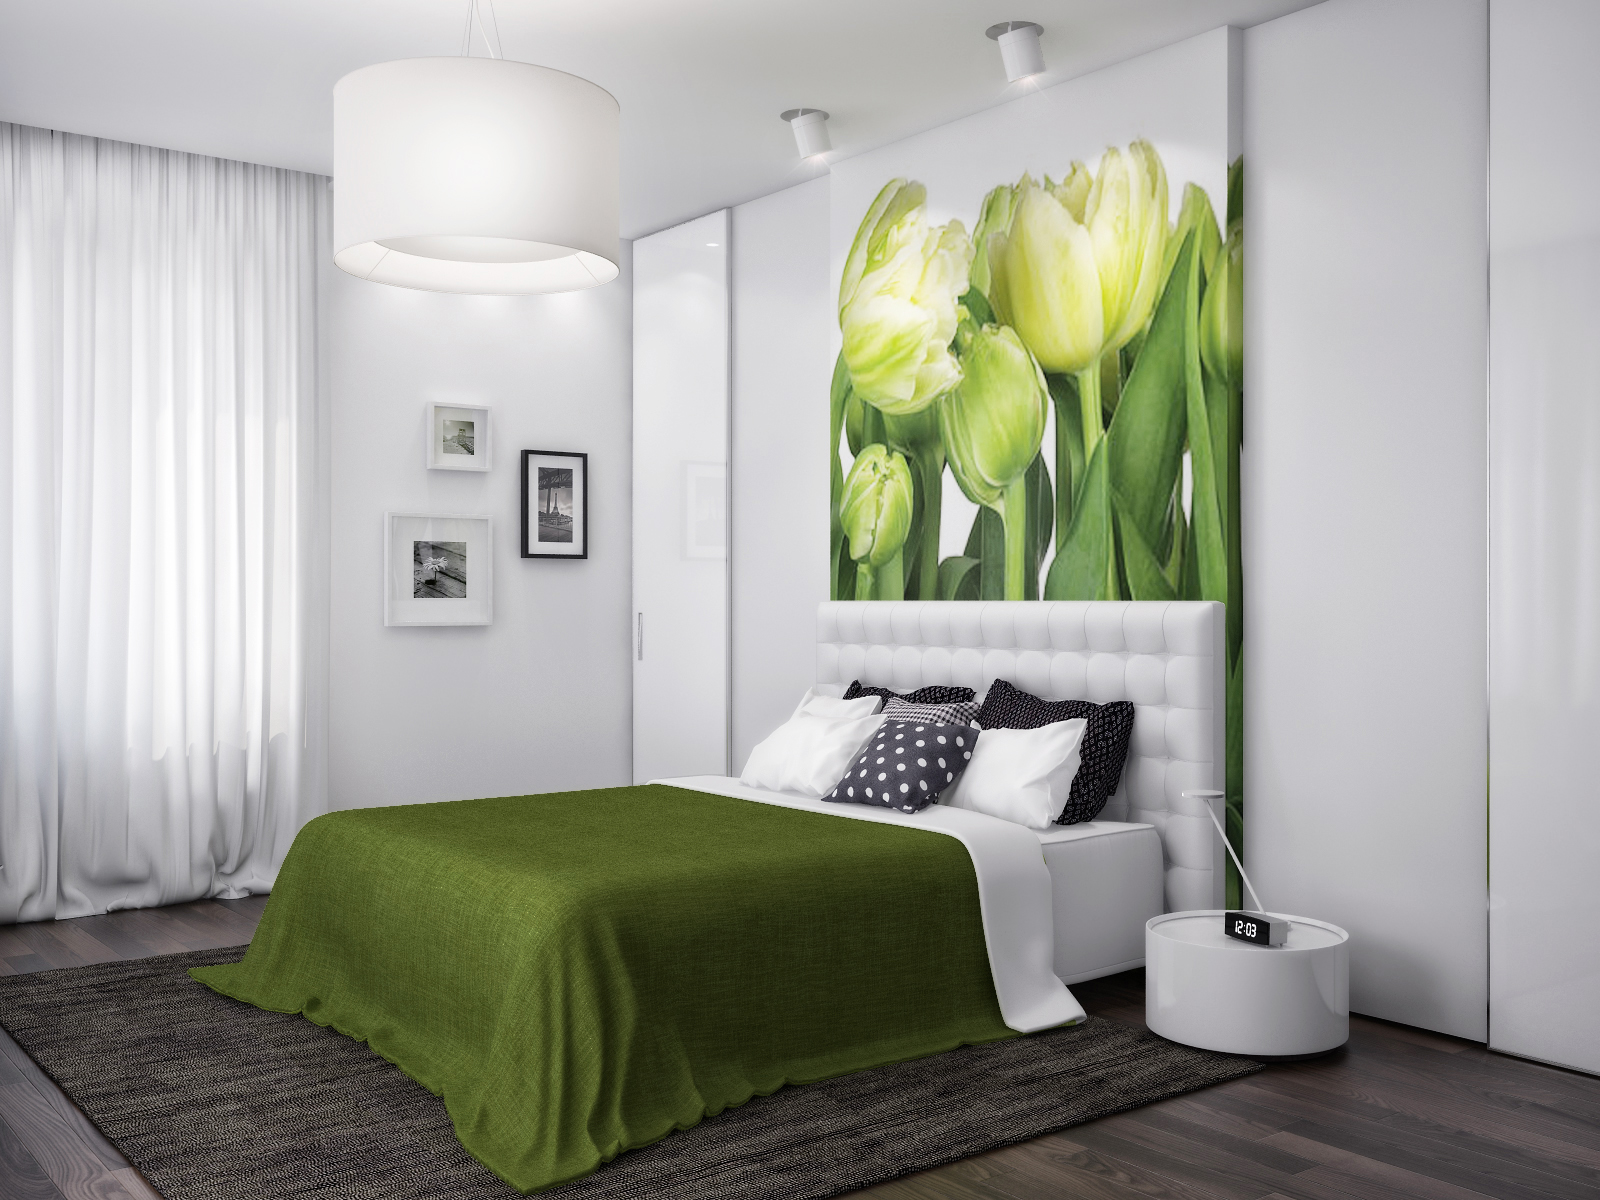 Green Bedroom Decorating Ideas Mesmerizing Of Green and White Bedroom Pictures